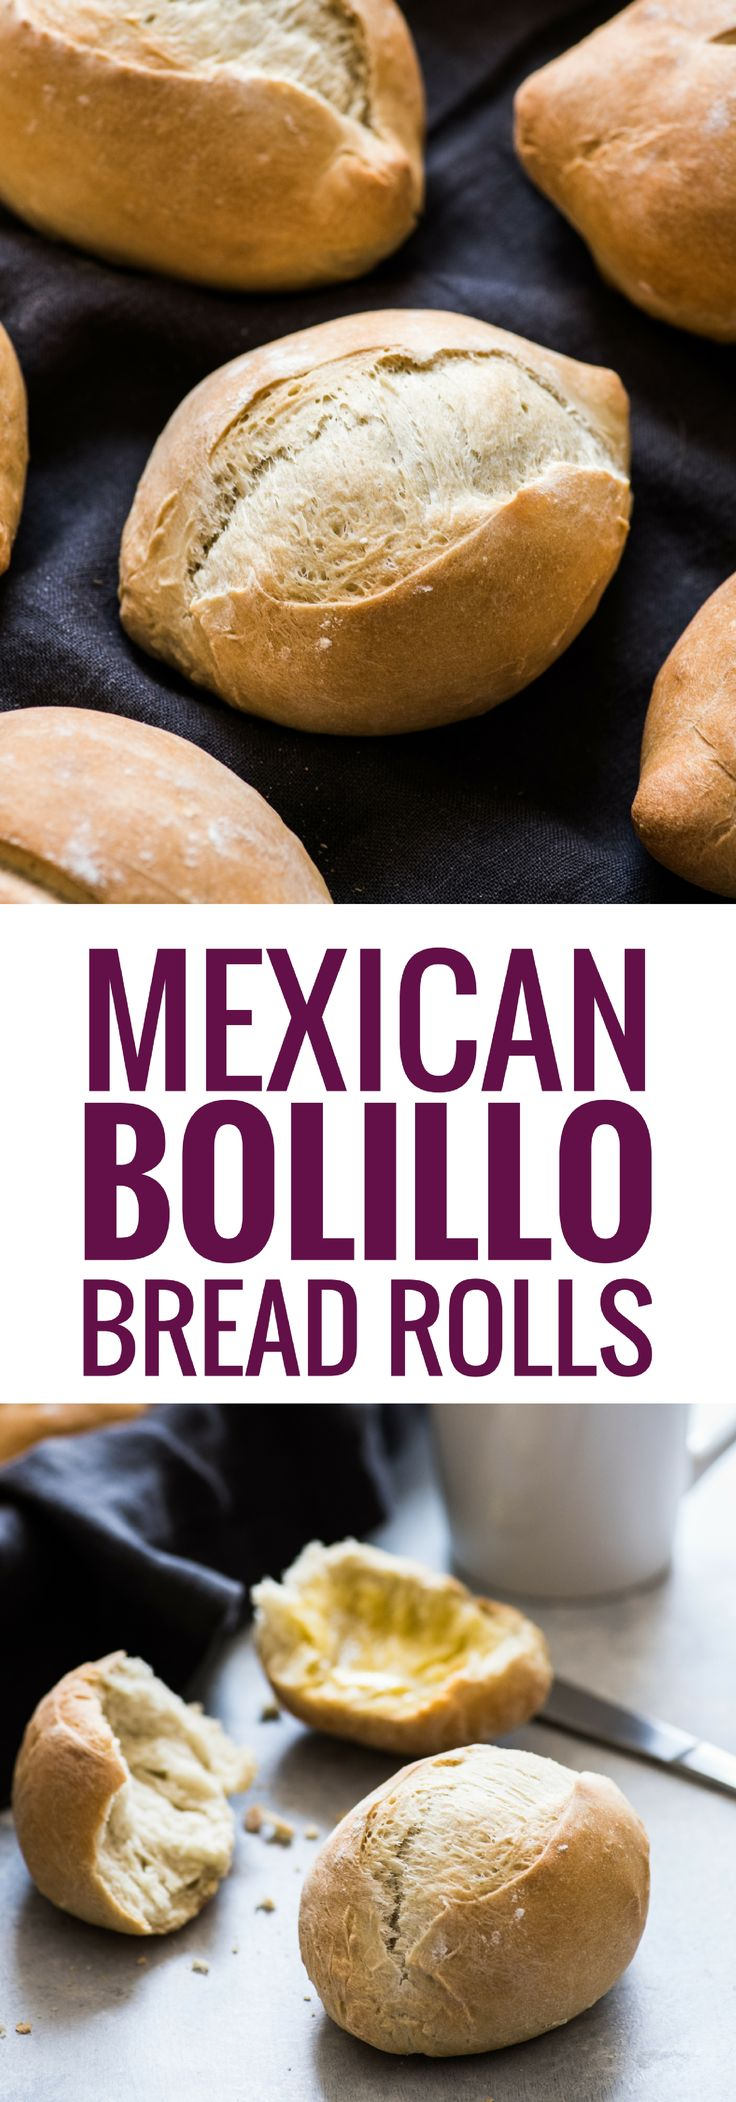 These Authentic Mexican Bolillo Bread Rolls are made with simple ingredients and easy to make. Enjoy them as a side dinner roll or as a Mexican torta! via @isabeleats